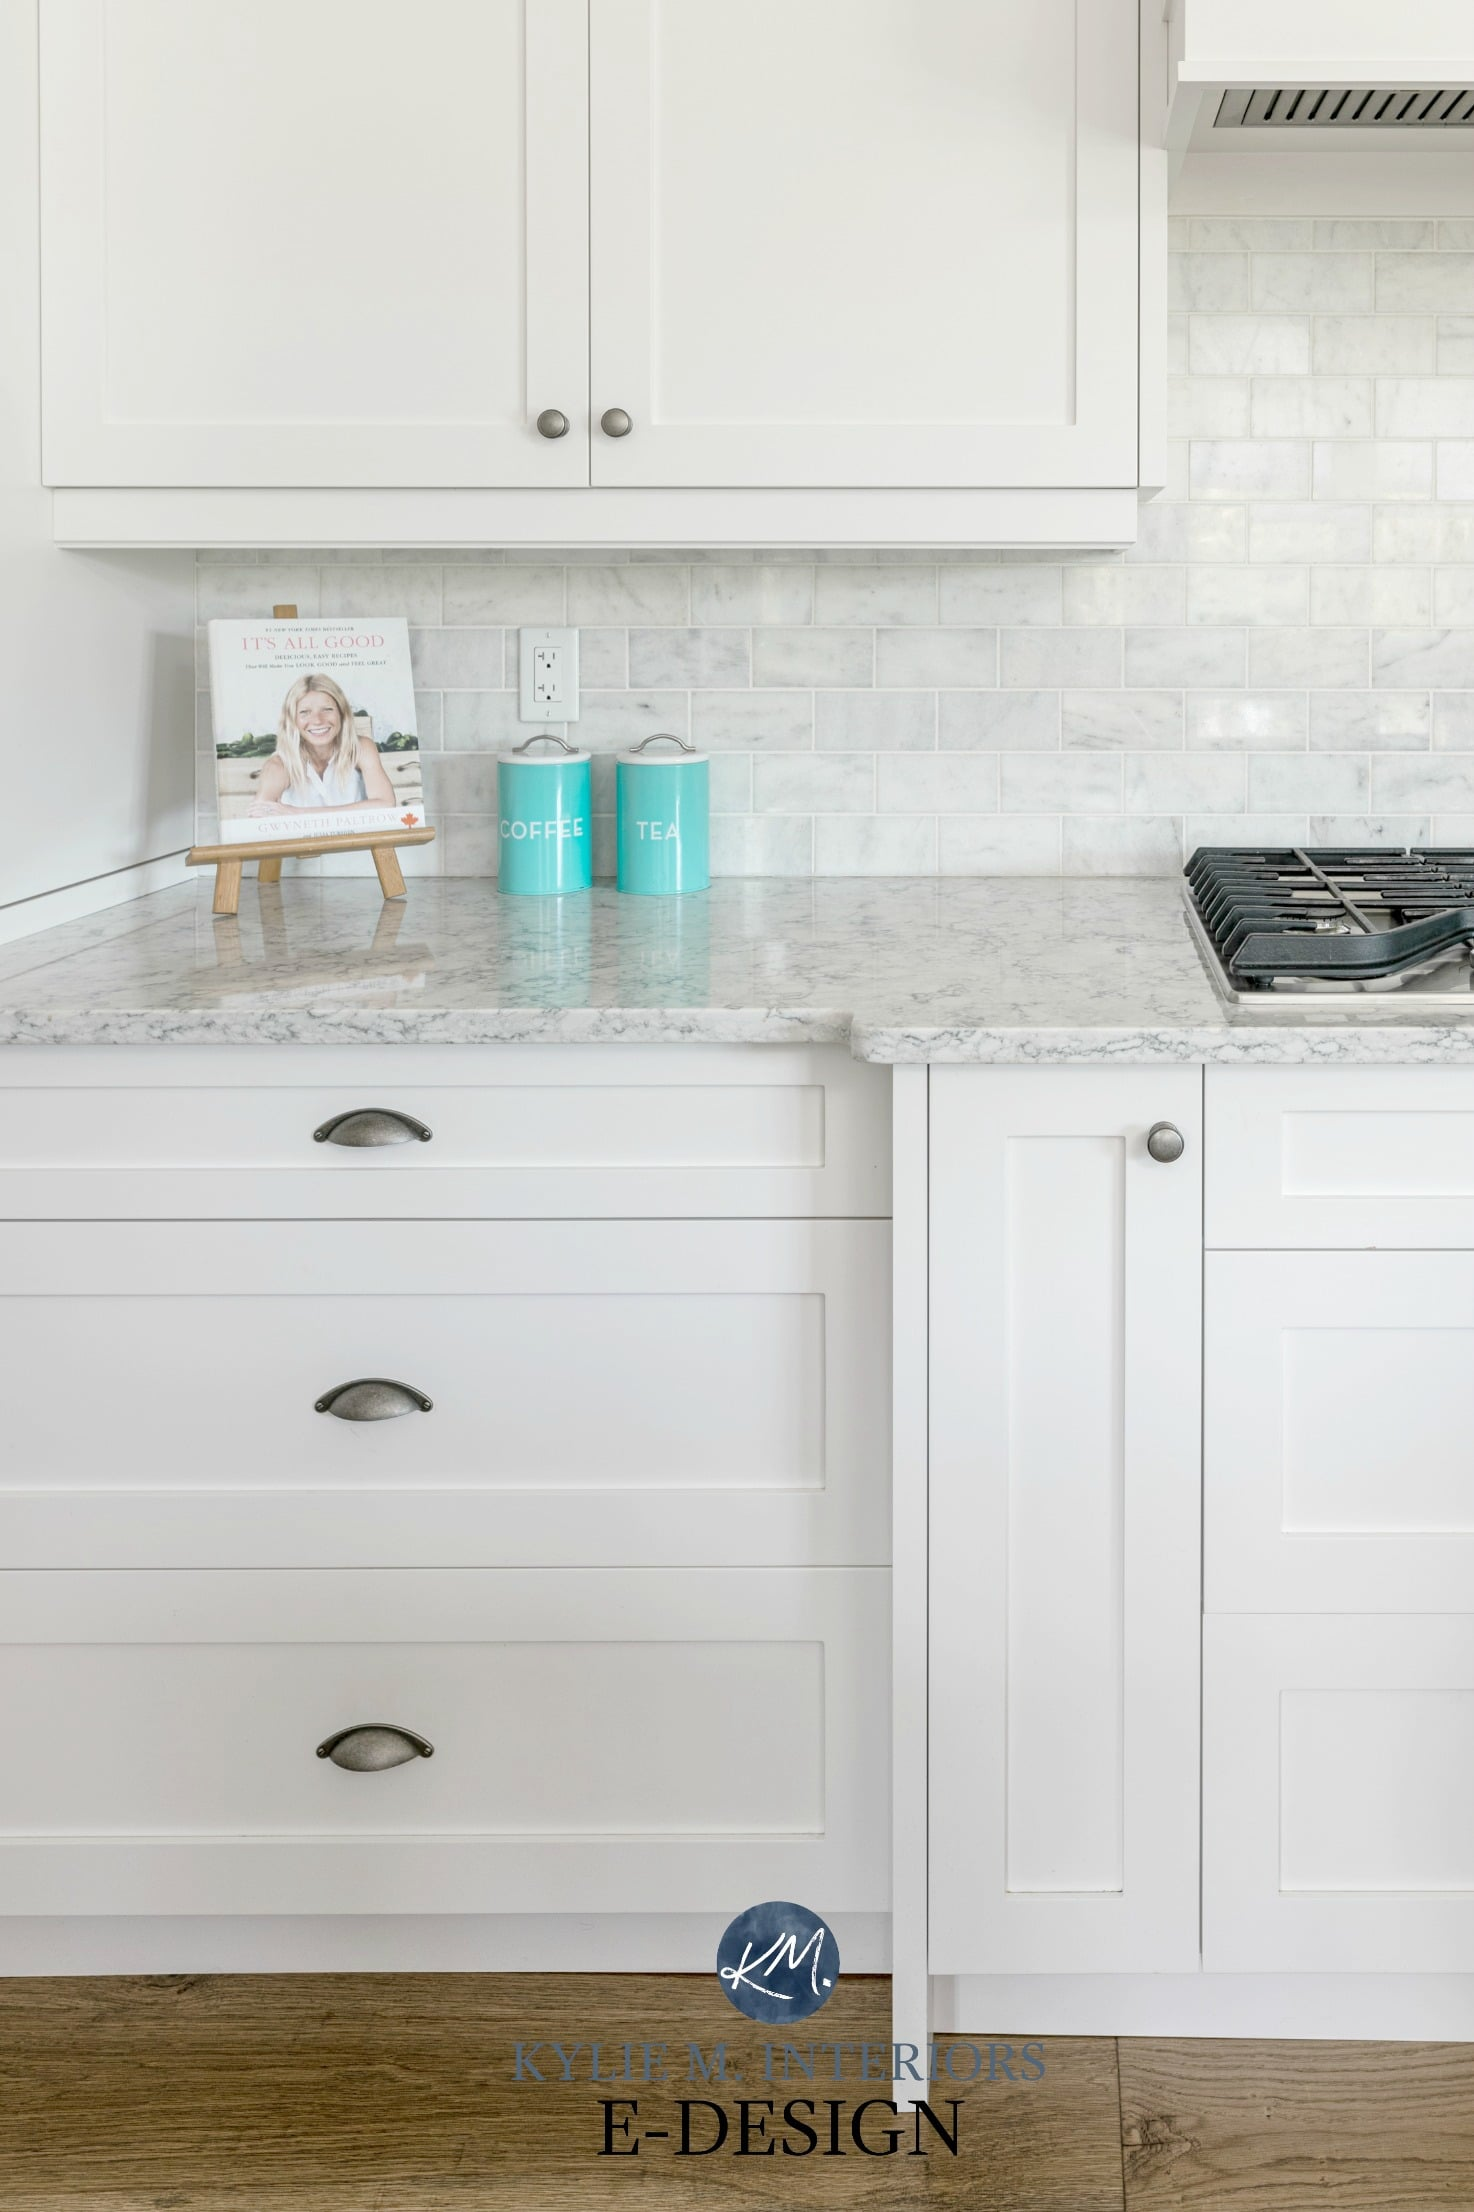 Kitchen cabinets painted Sherwin High Reflective White, marble backsplash, white quartz, home decor on countertop. Pewter hardware. Kylie M Interiors Edesign, online paint colour consulting